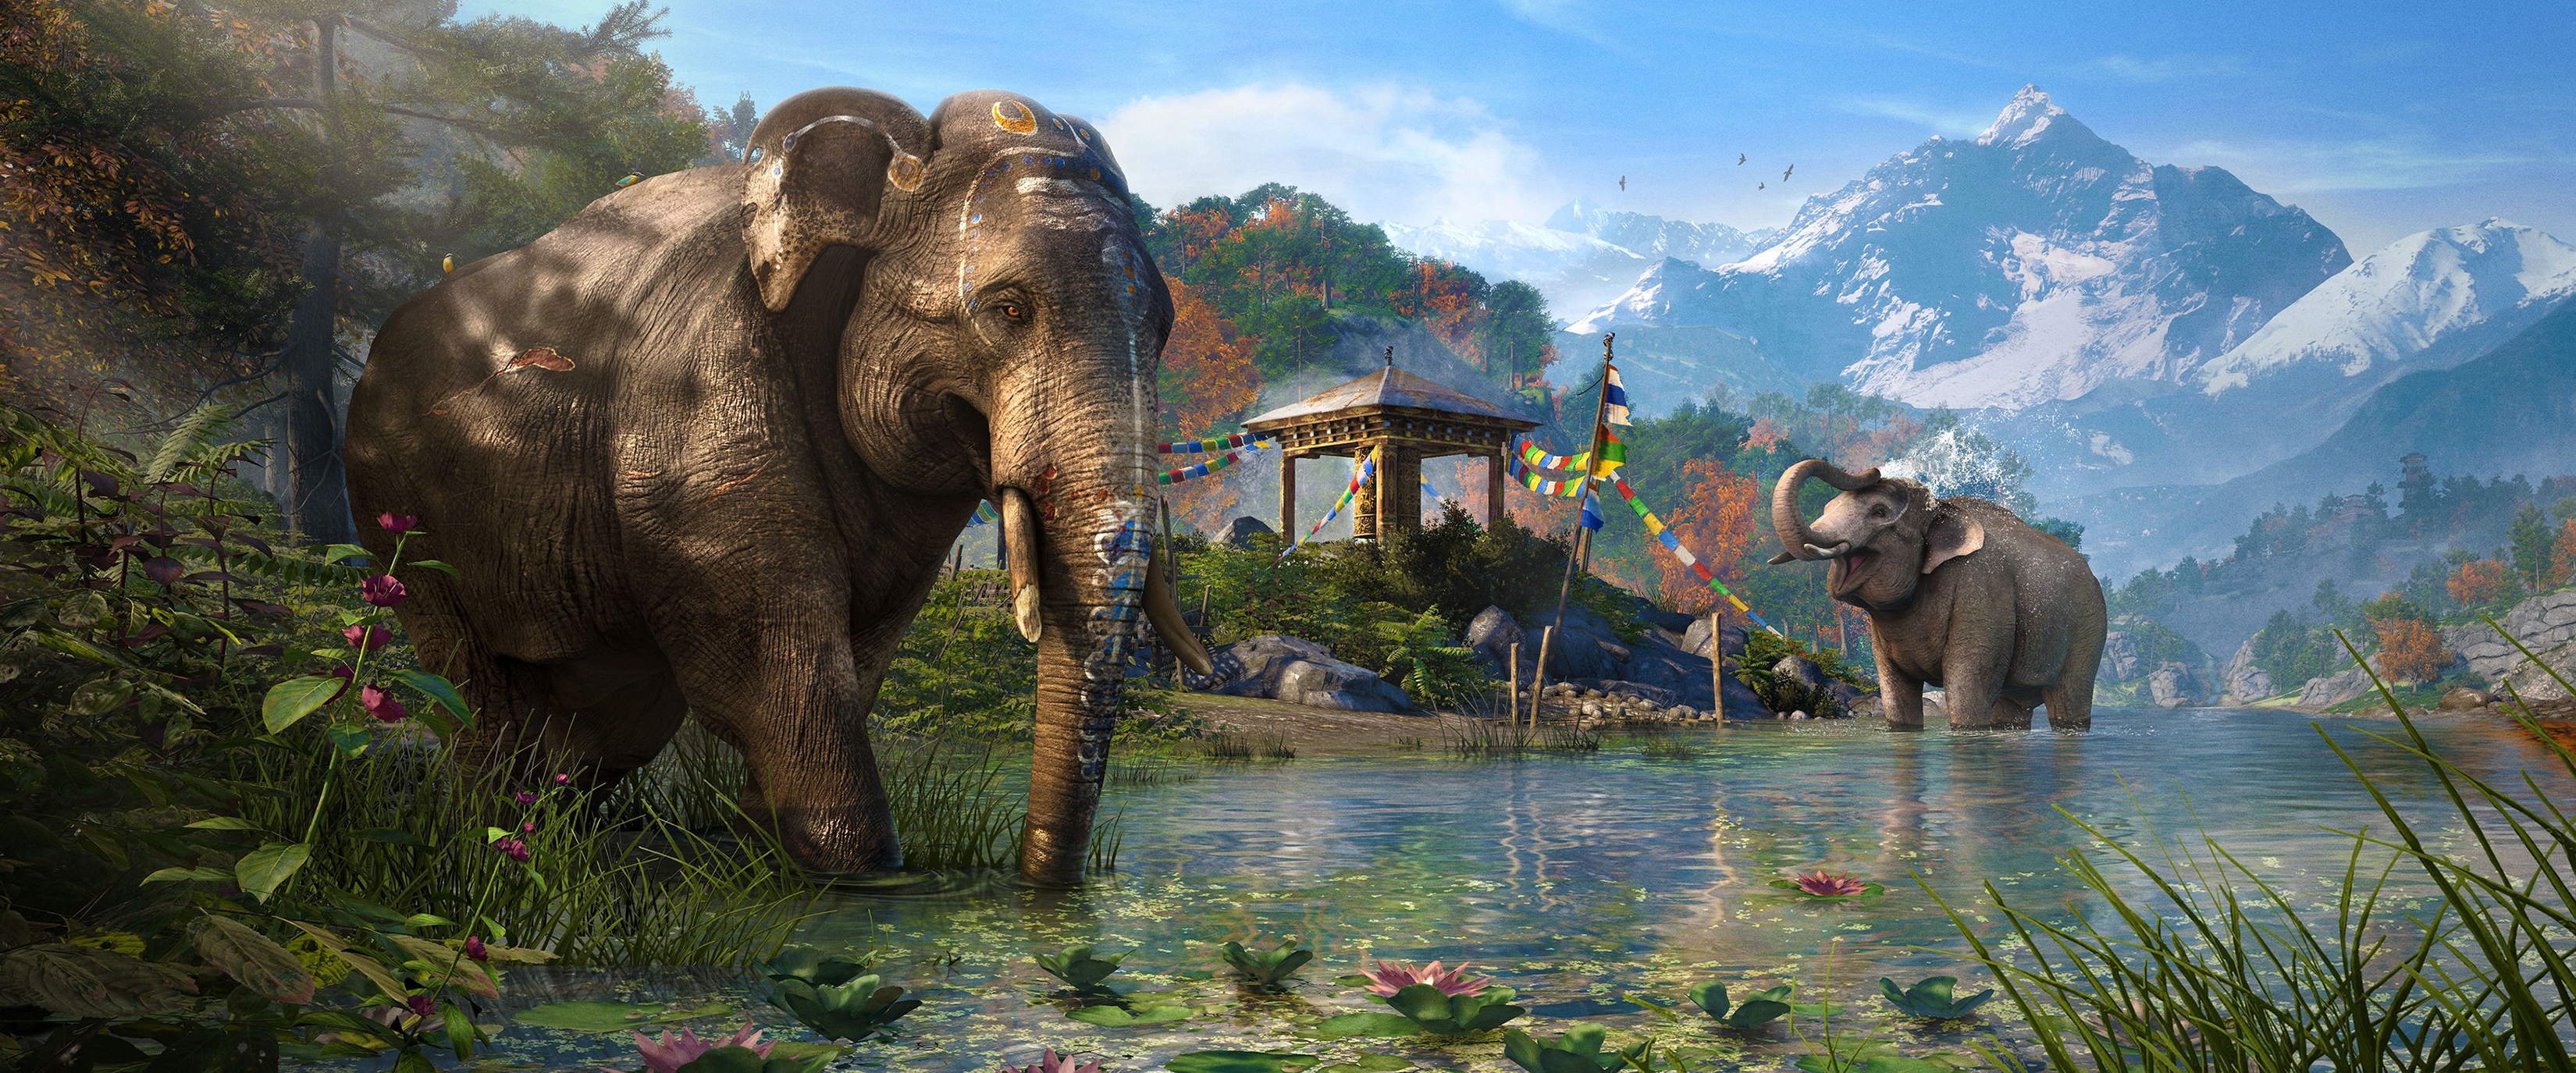 fc4-screen-kyrat-elephant